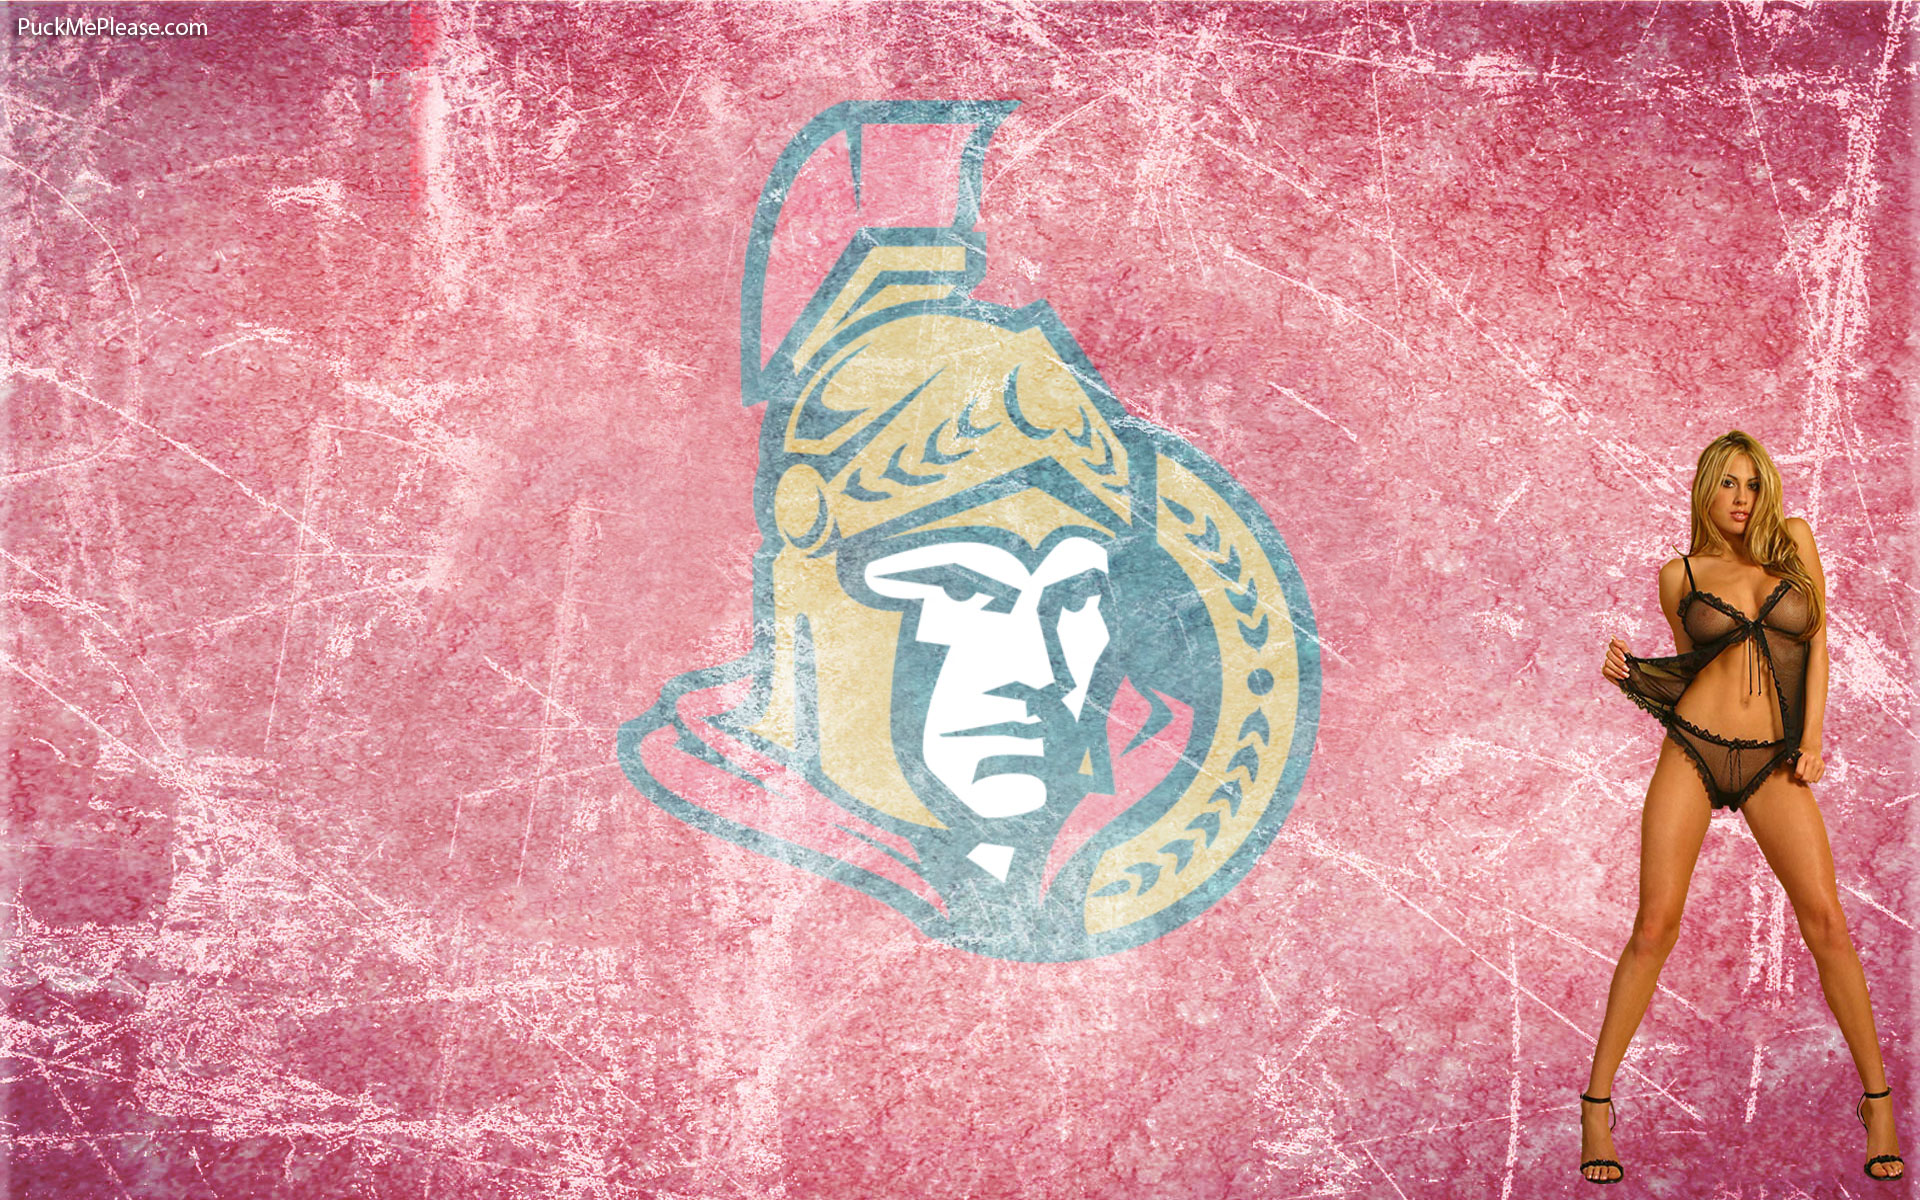 Ottawa Senators Wallpaper hot babe